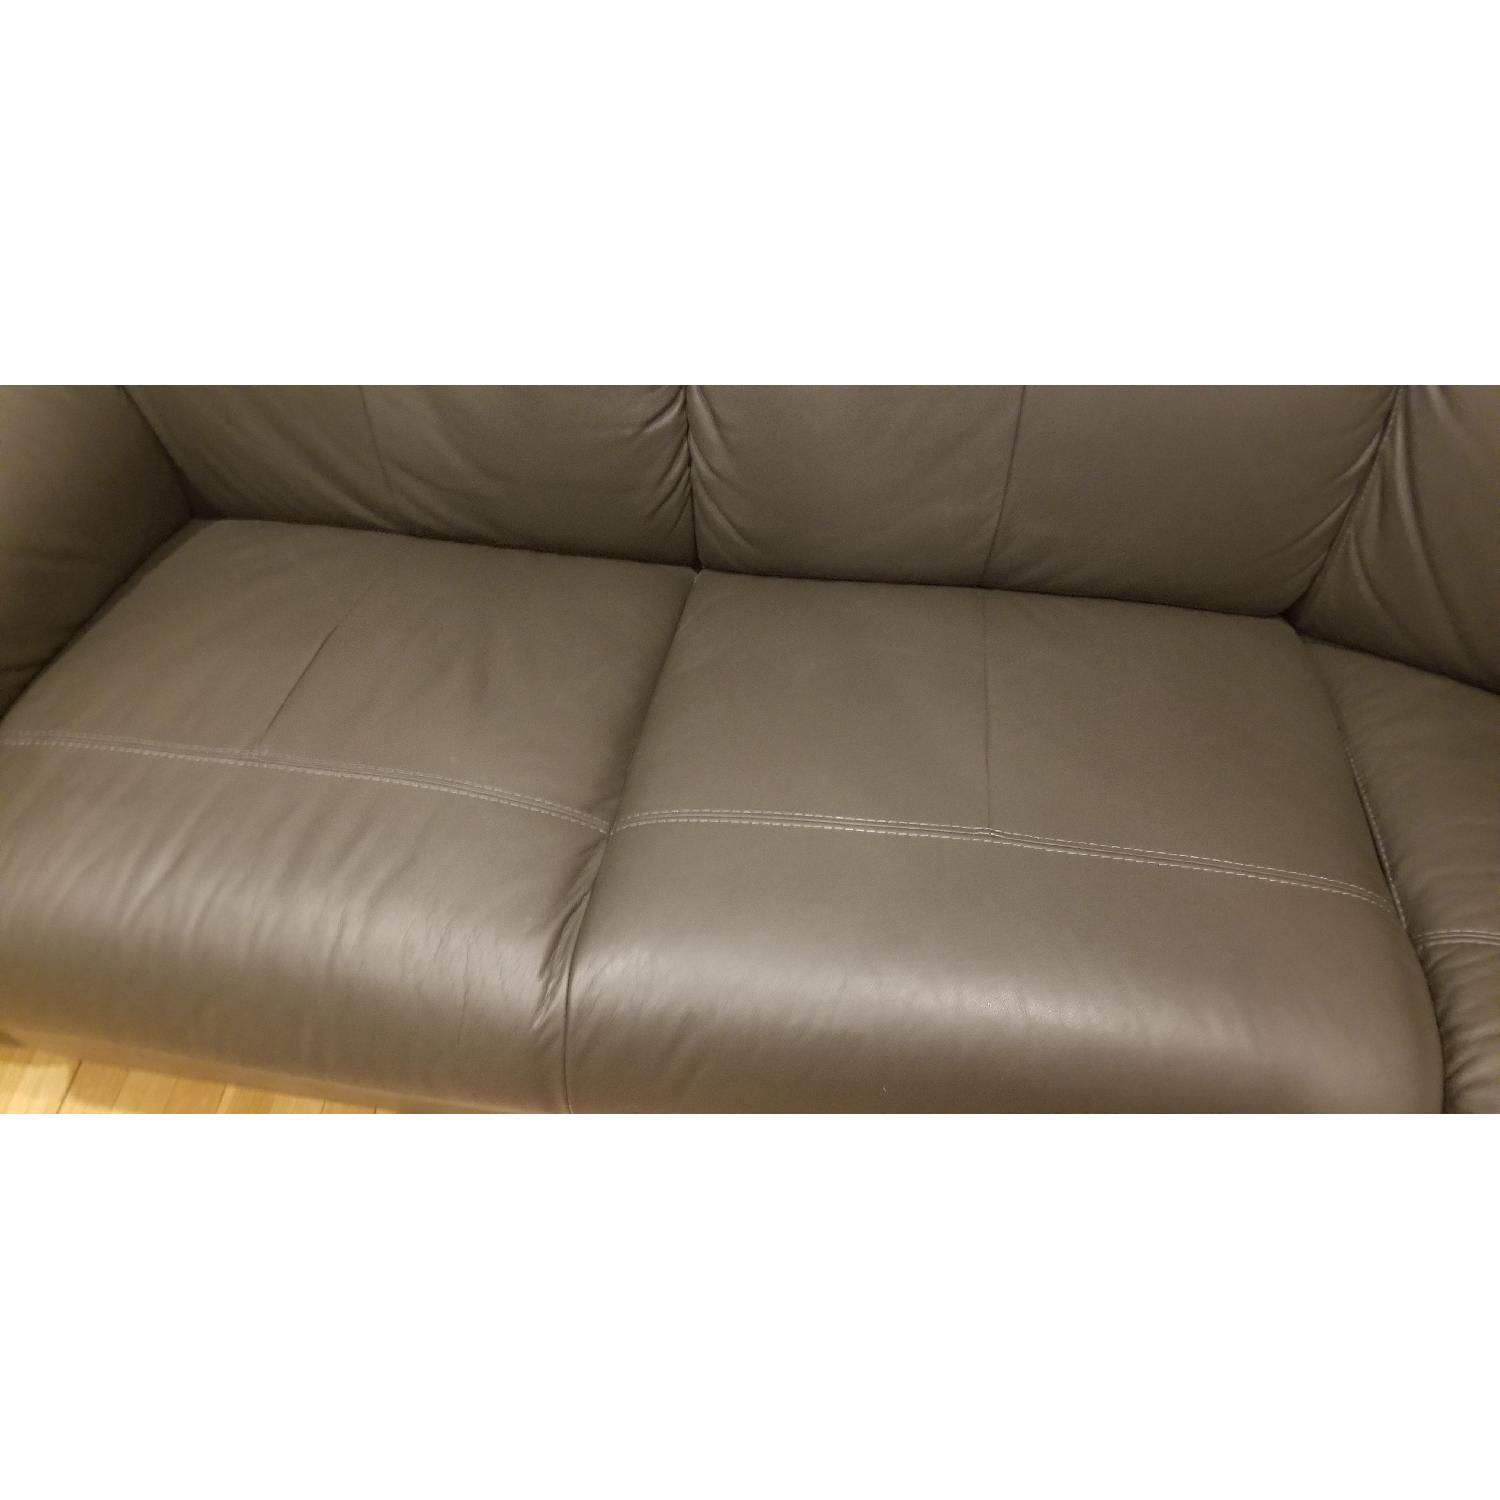 Ikea Timsfors Faux Leather Sectional Sofa - image-8